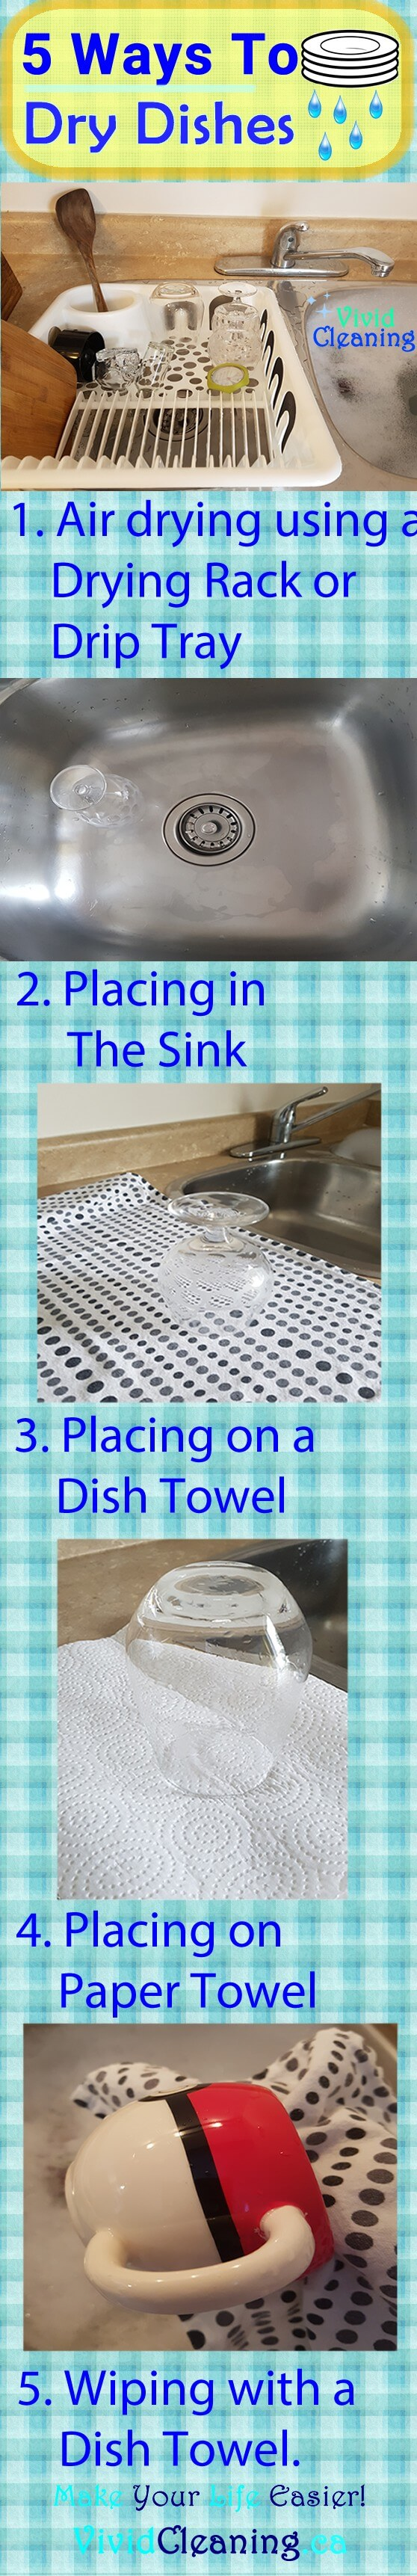 5 Ways To Dry Your Dishes Make Your Life Easier